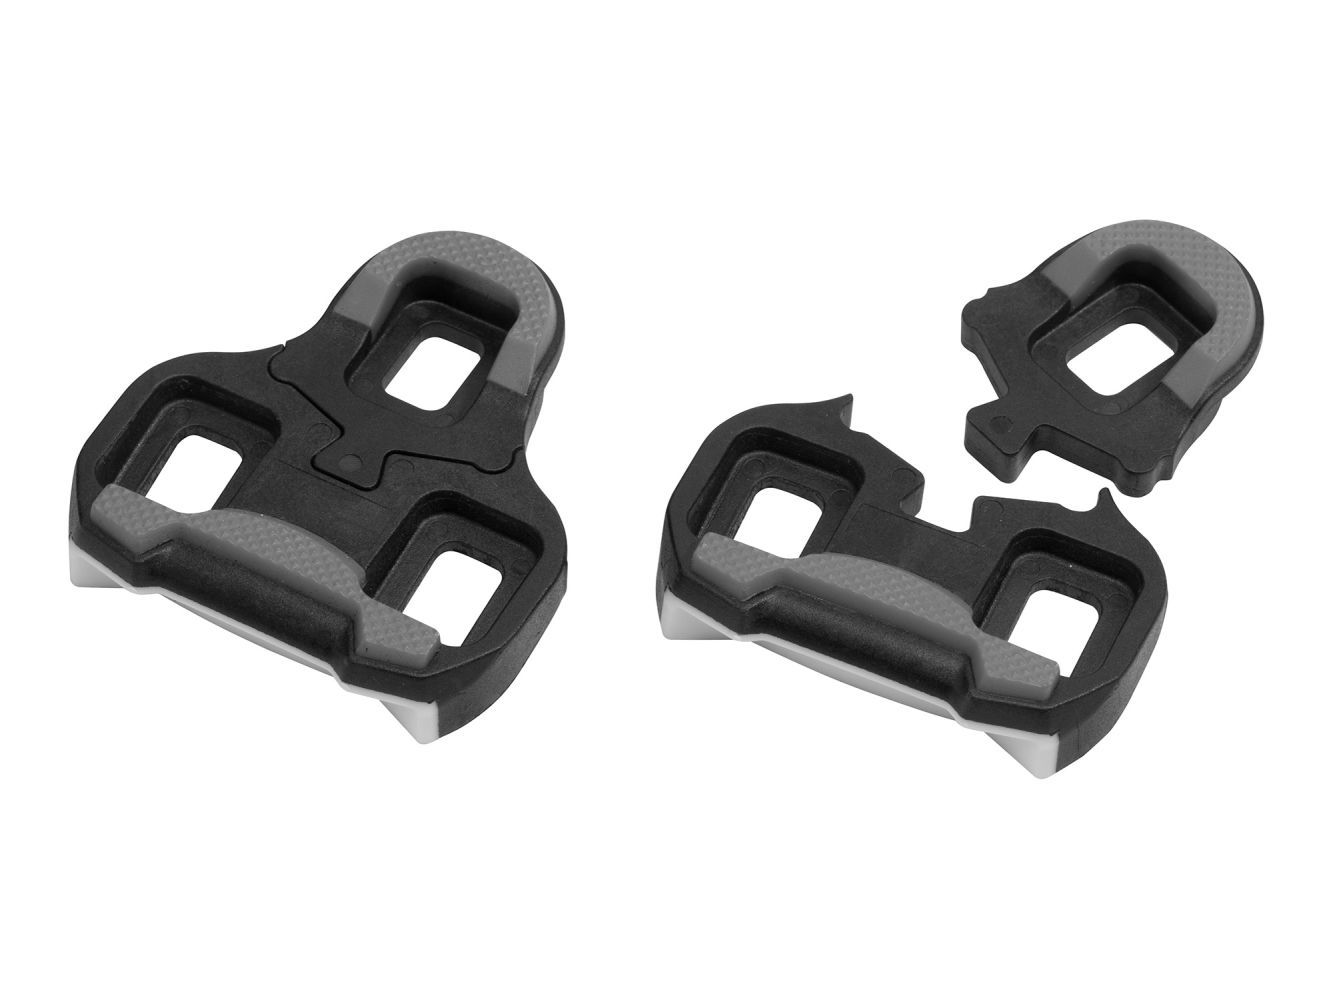 Giant Road Pedal Cleats 4.5 Degree Float (look Compatible) | Pedal cleats